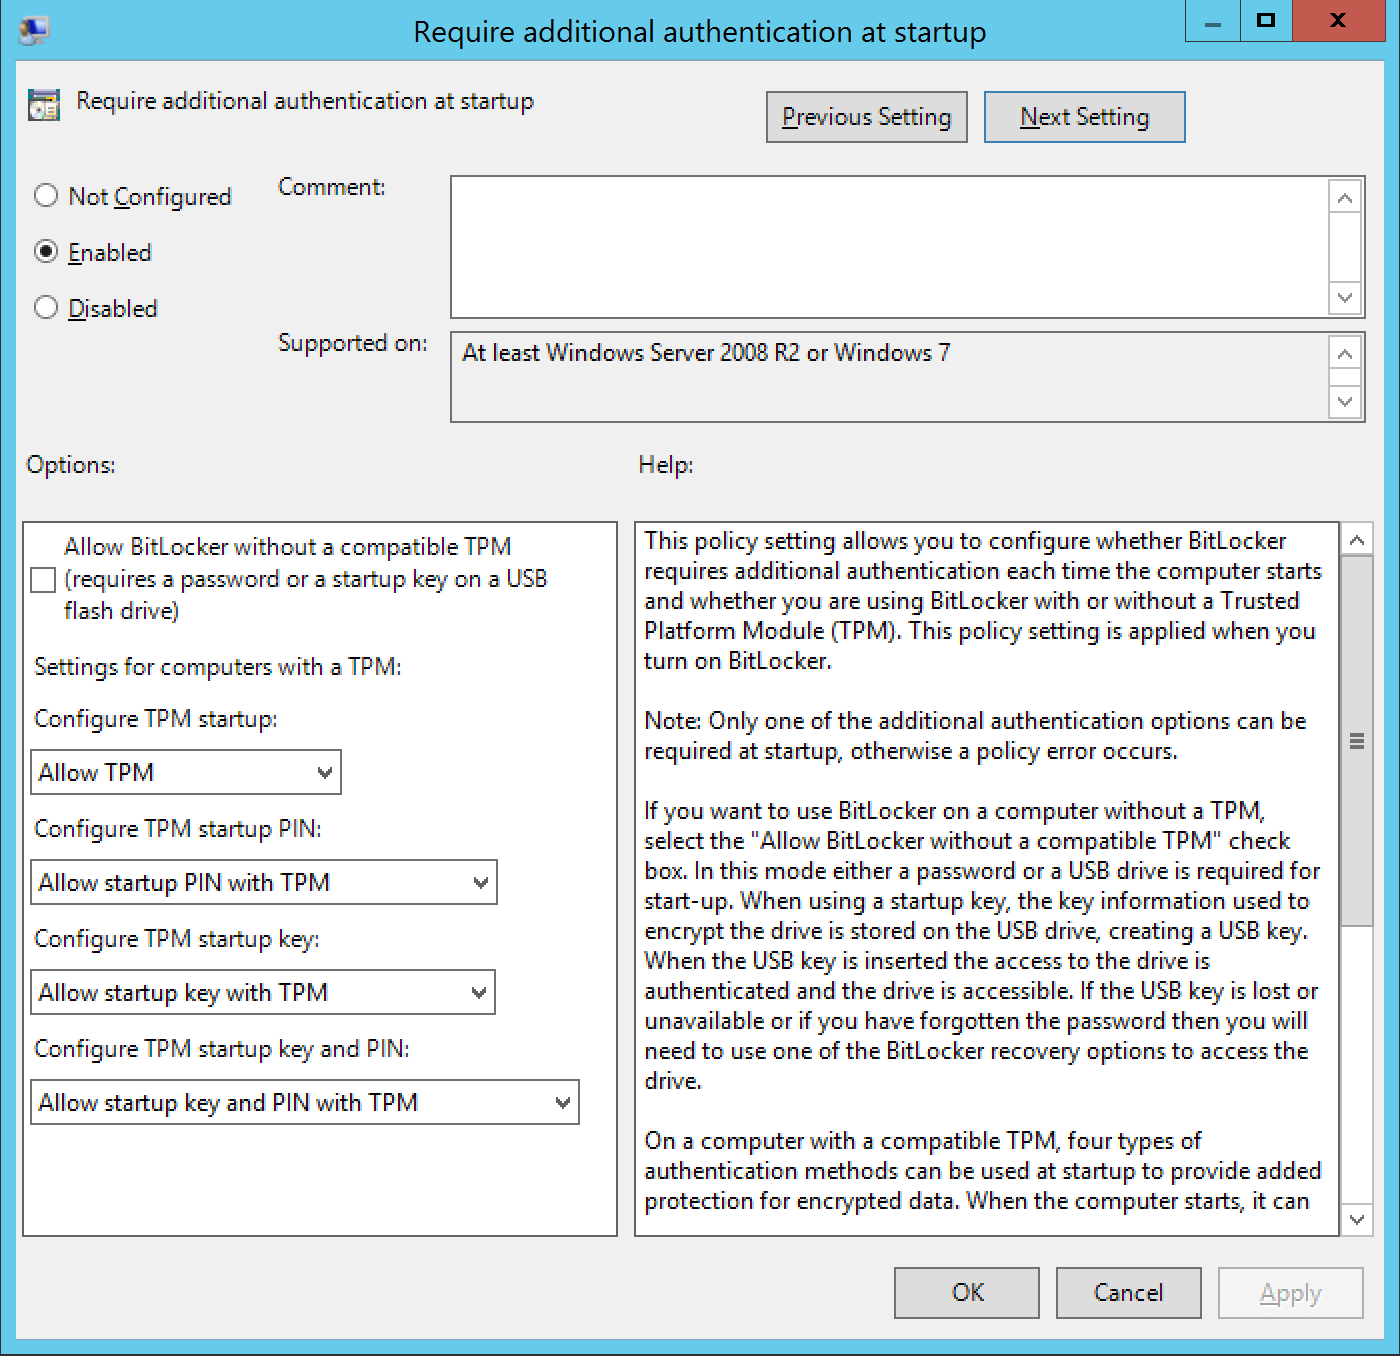 Secure your desktop with Bitlocker  Require additional authentification